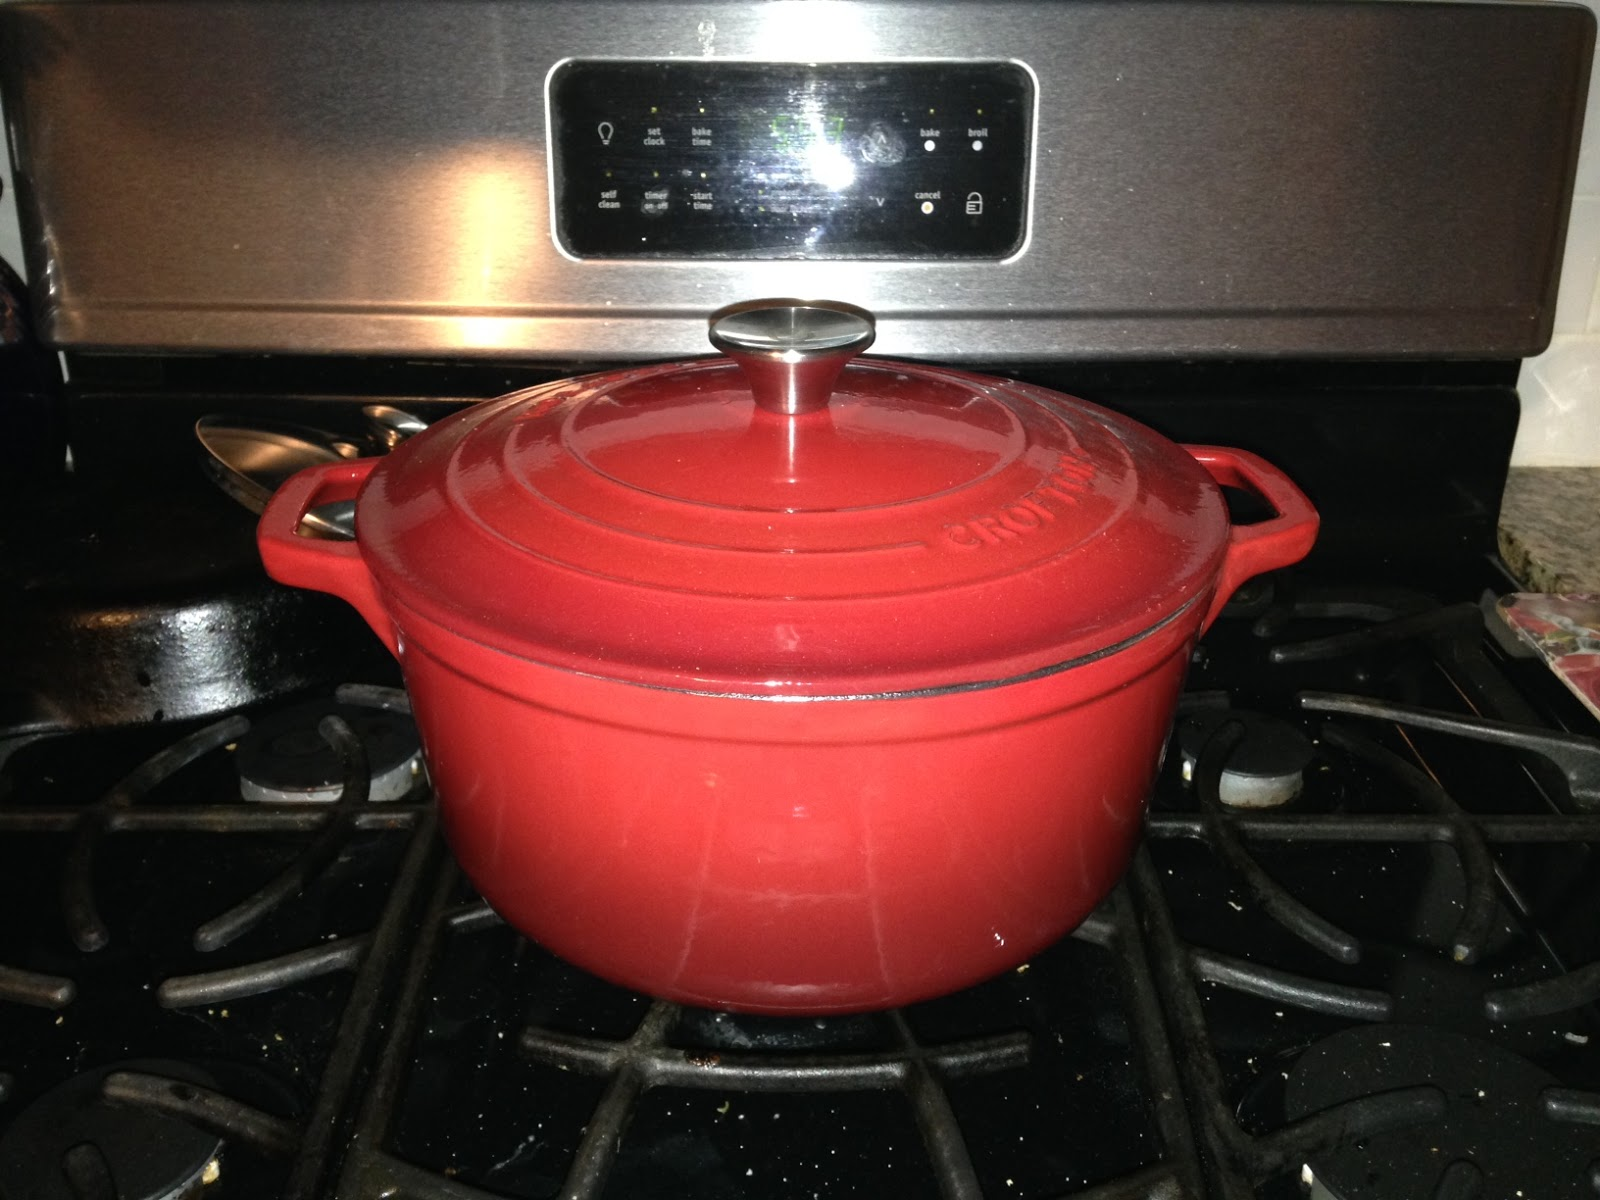 Aldi Saucepans Product Review Crofton Enameled Cast Iron Dutch Oven And Braiser